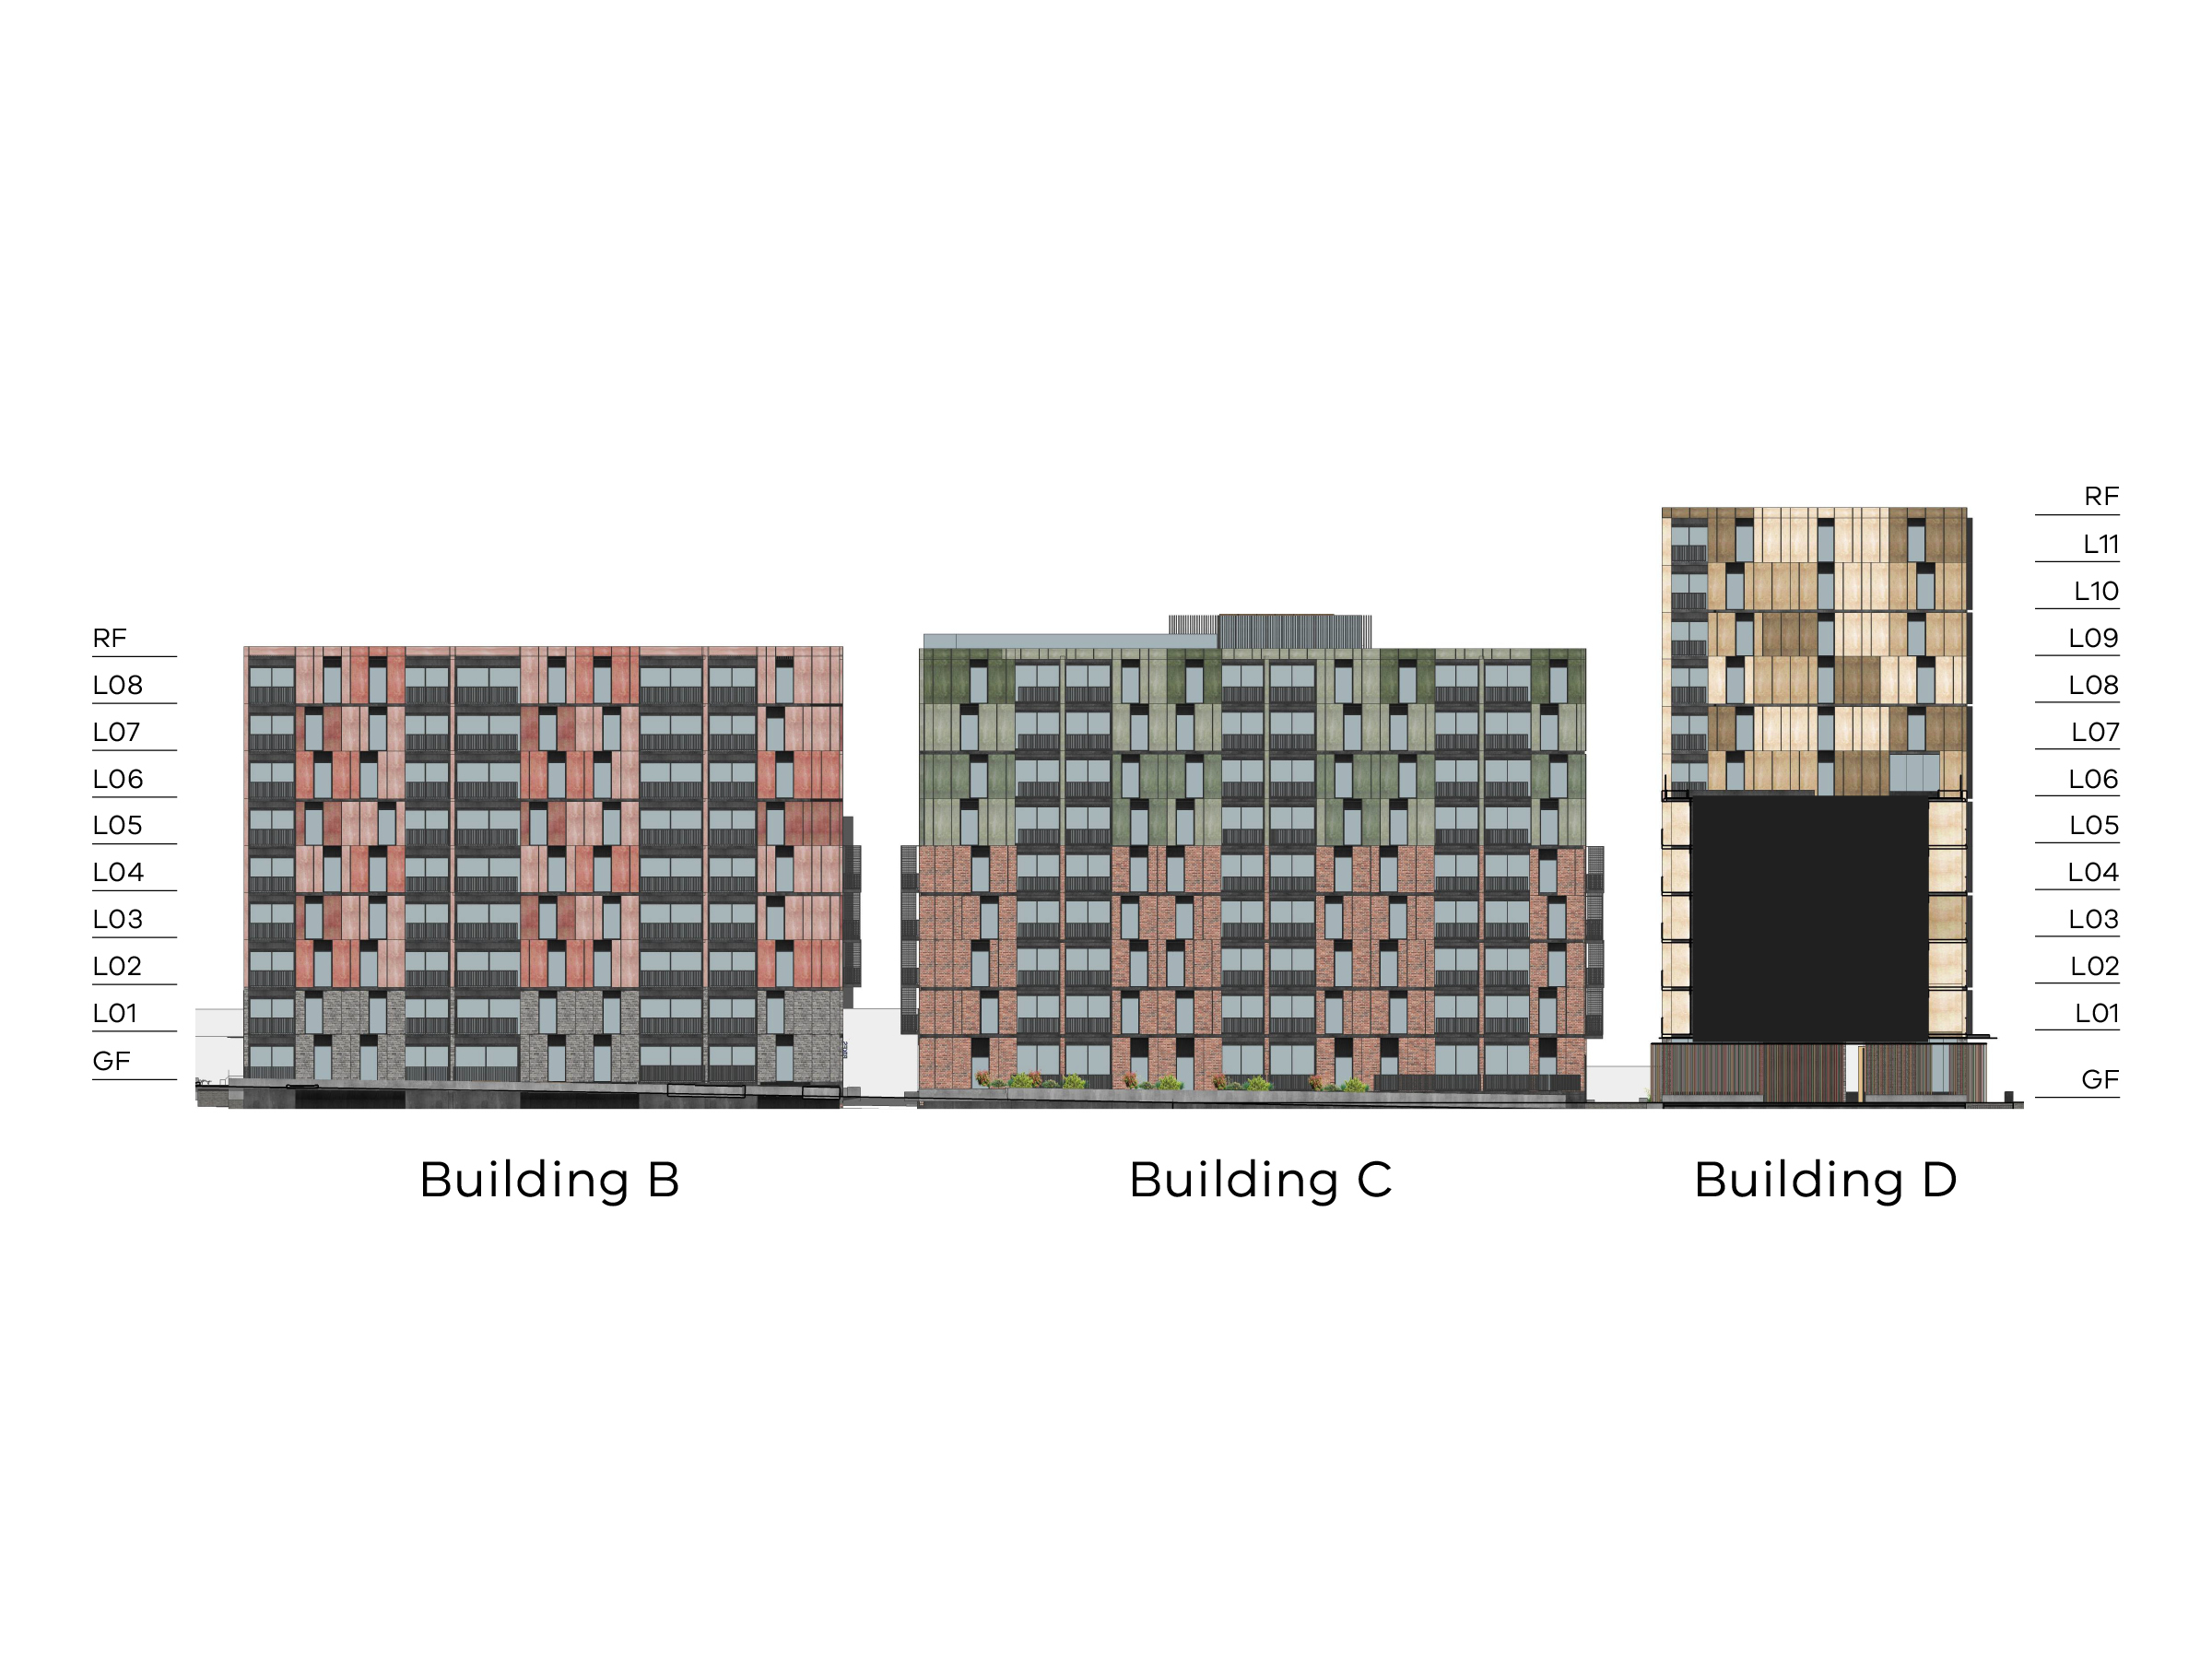 Diagram showing the heights of buildings B, C and D as seen from the north-south link on site looking towards Bangs Street. Buildings B and C have a ground floor, level 1-8 and a flat roof. Building D has a ground floor, level 1-11 and a flat roof.